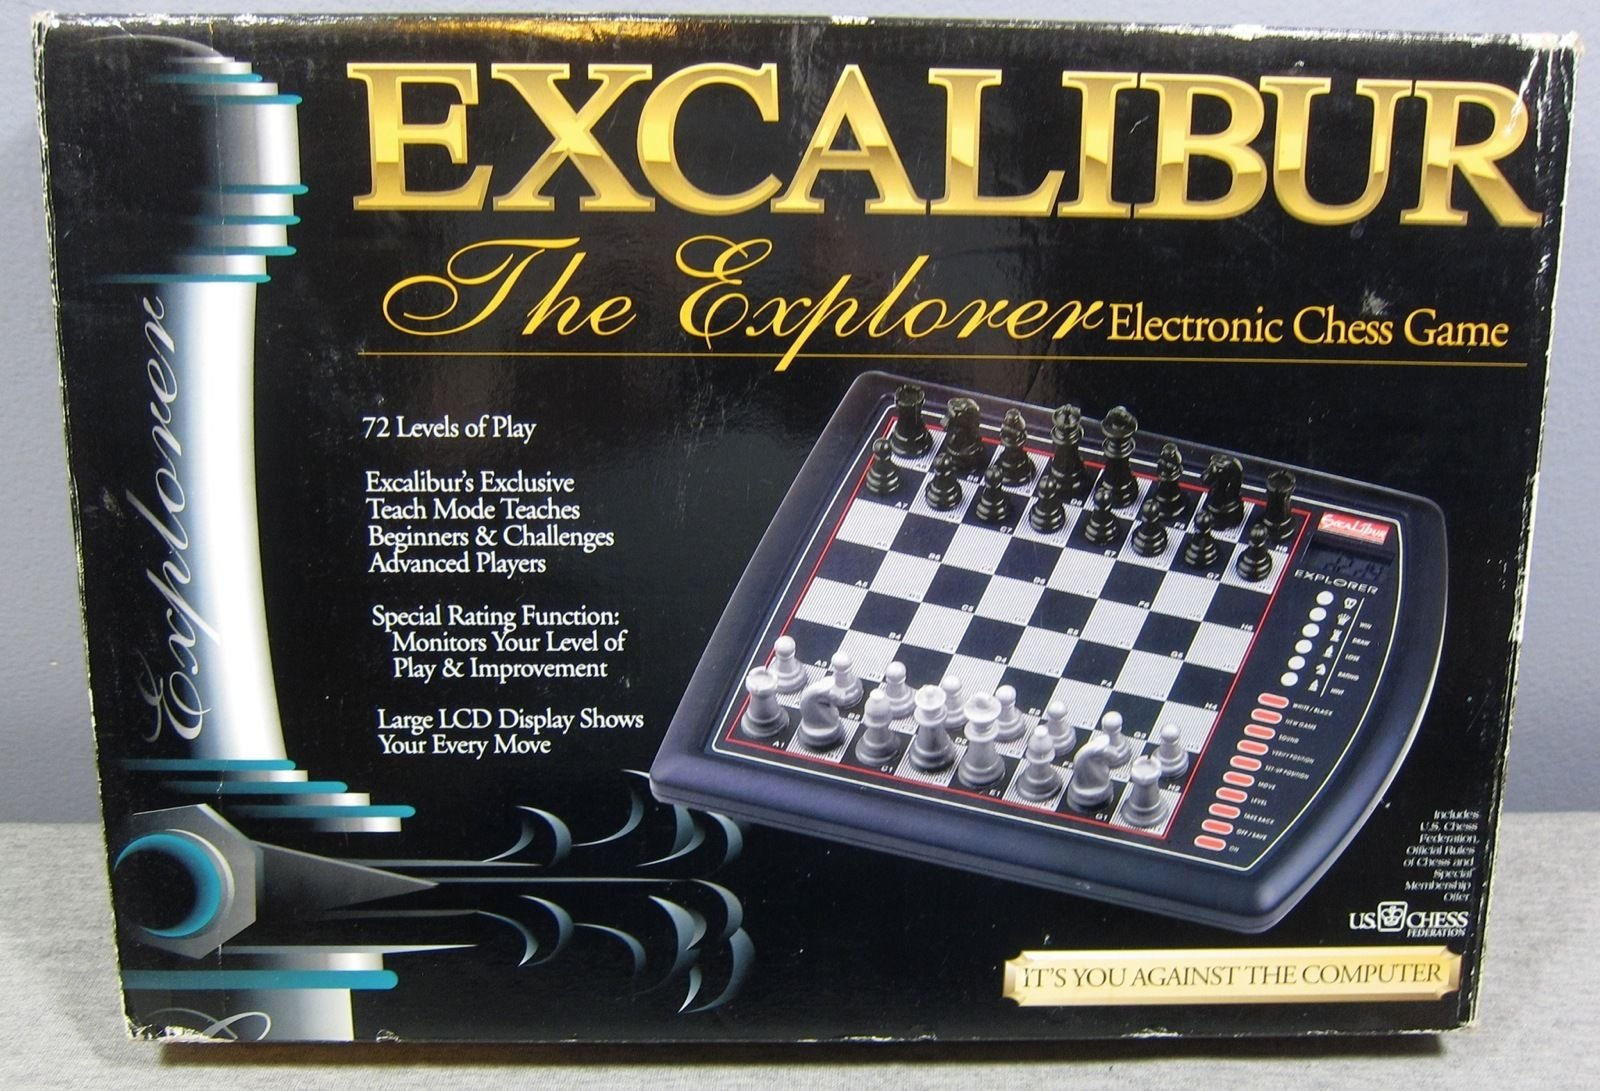 Excalibur the Explorer Electronic Chess Game